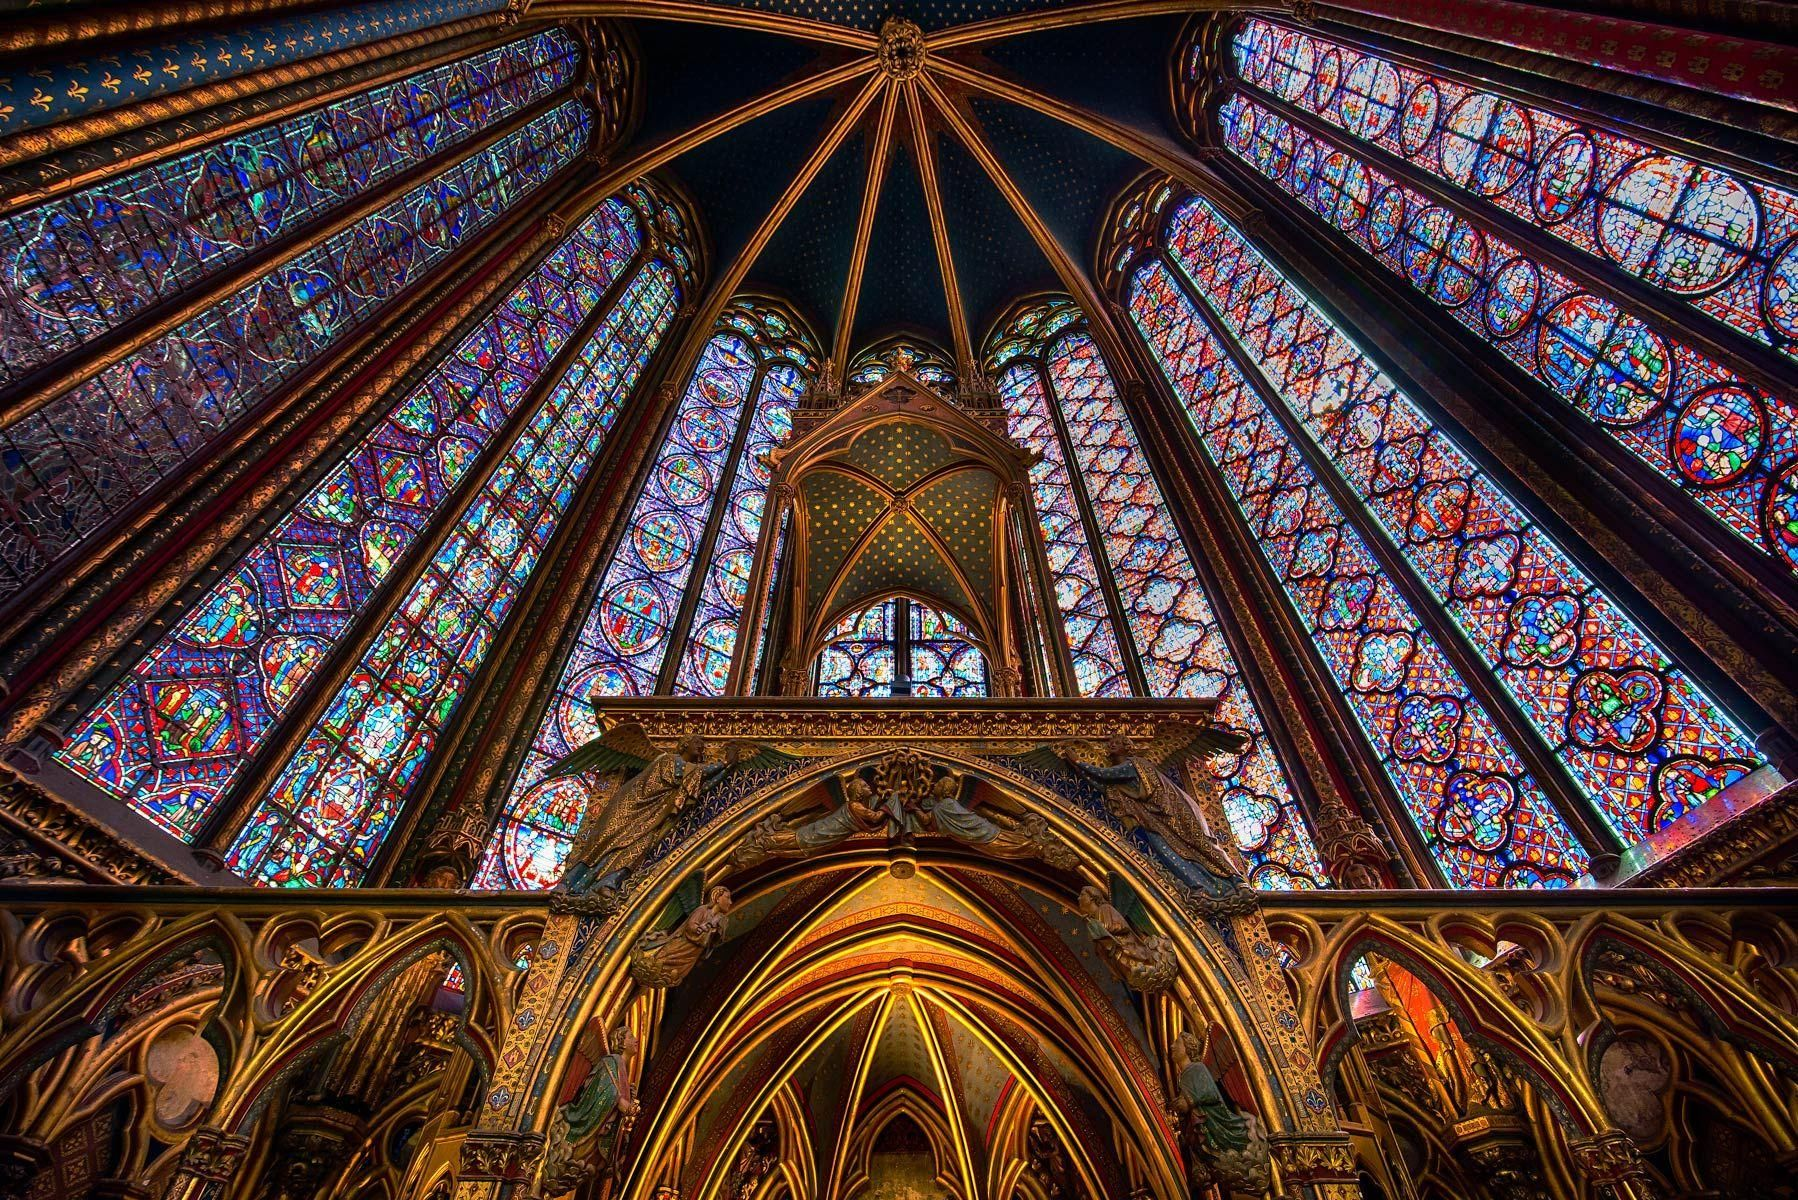 Ste. Chapelle, Paris, France